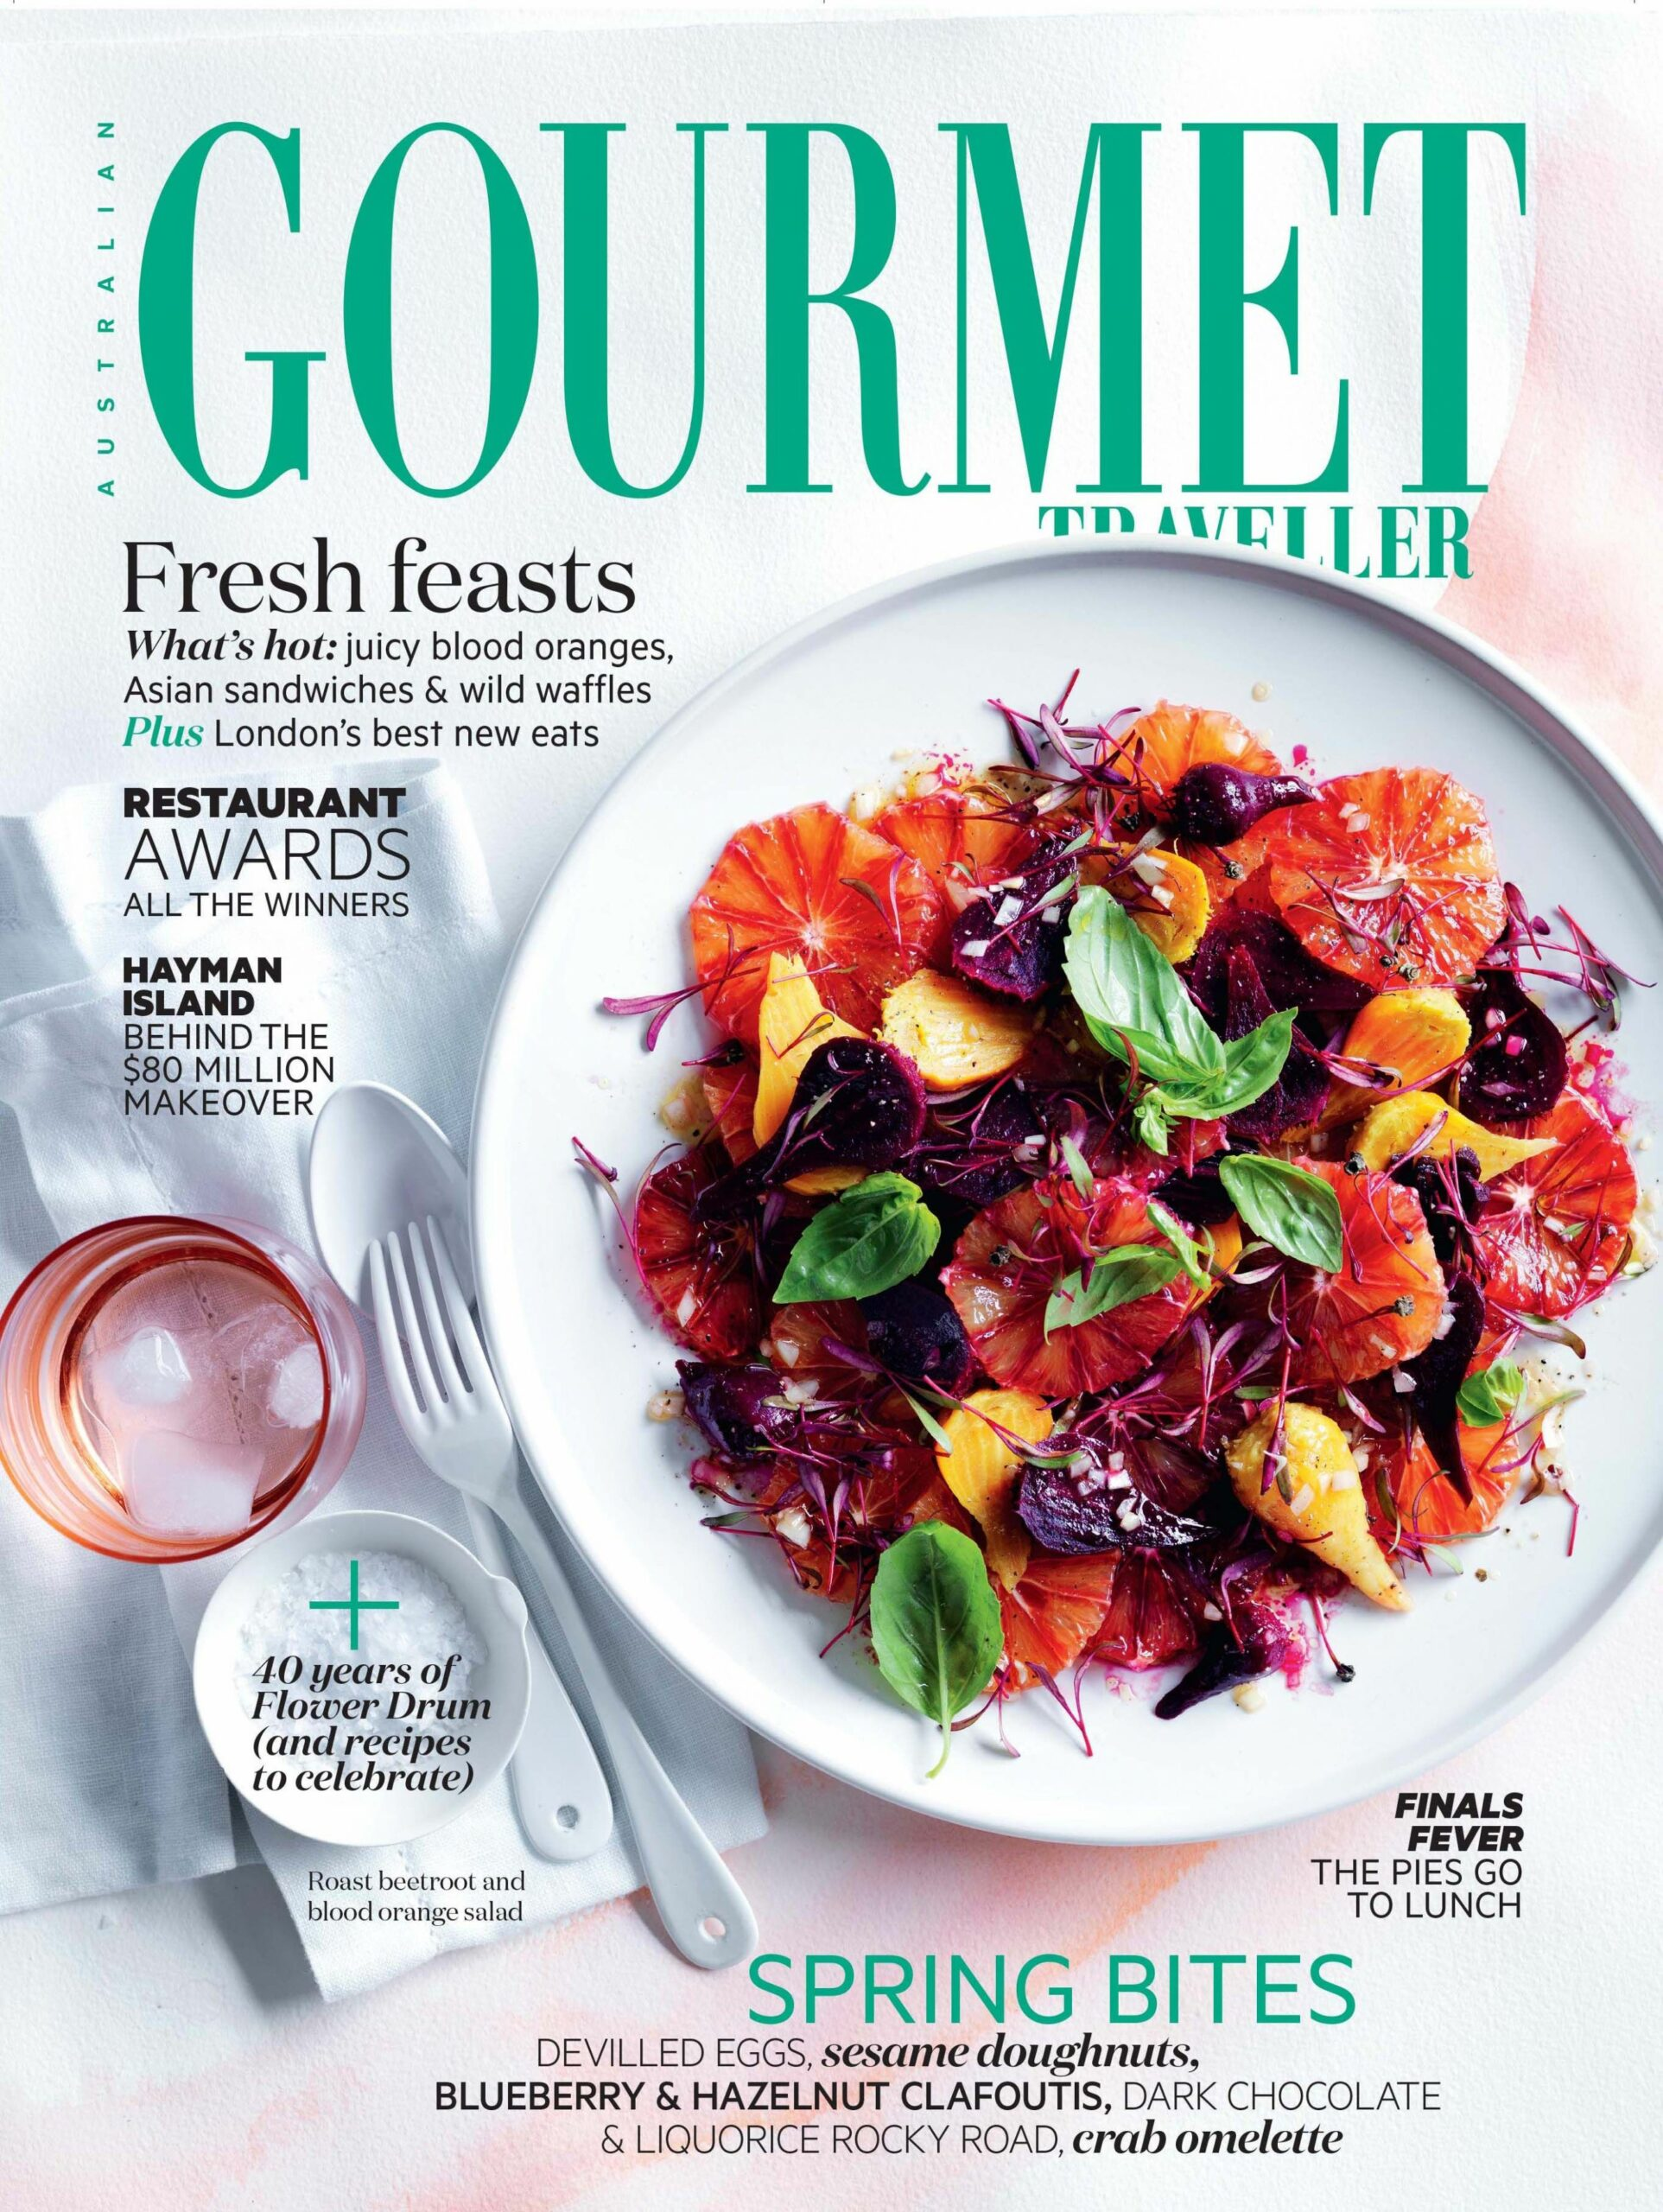 Roast beetroot and blood orange salad - Salad Recipes Gourmet Traveller